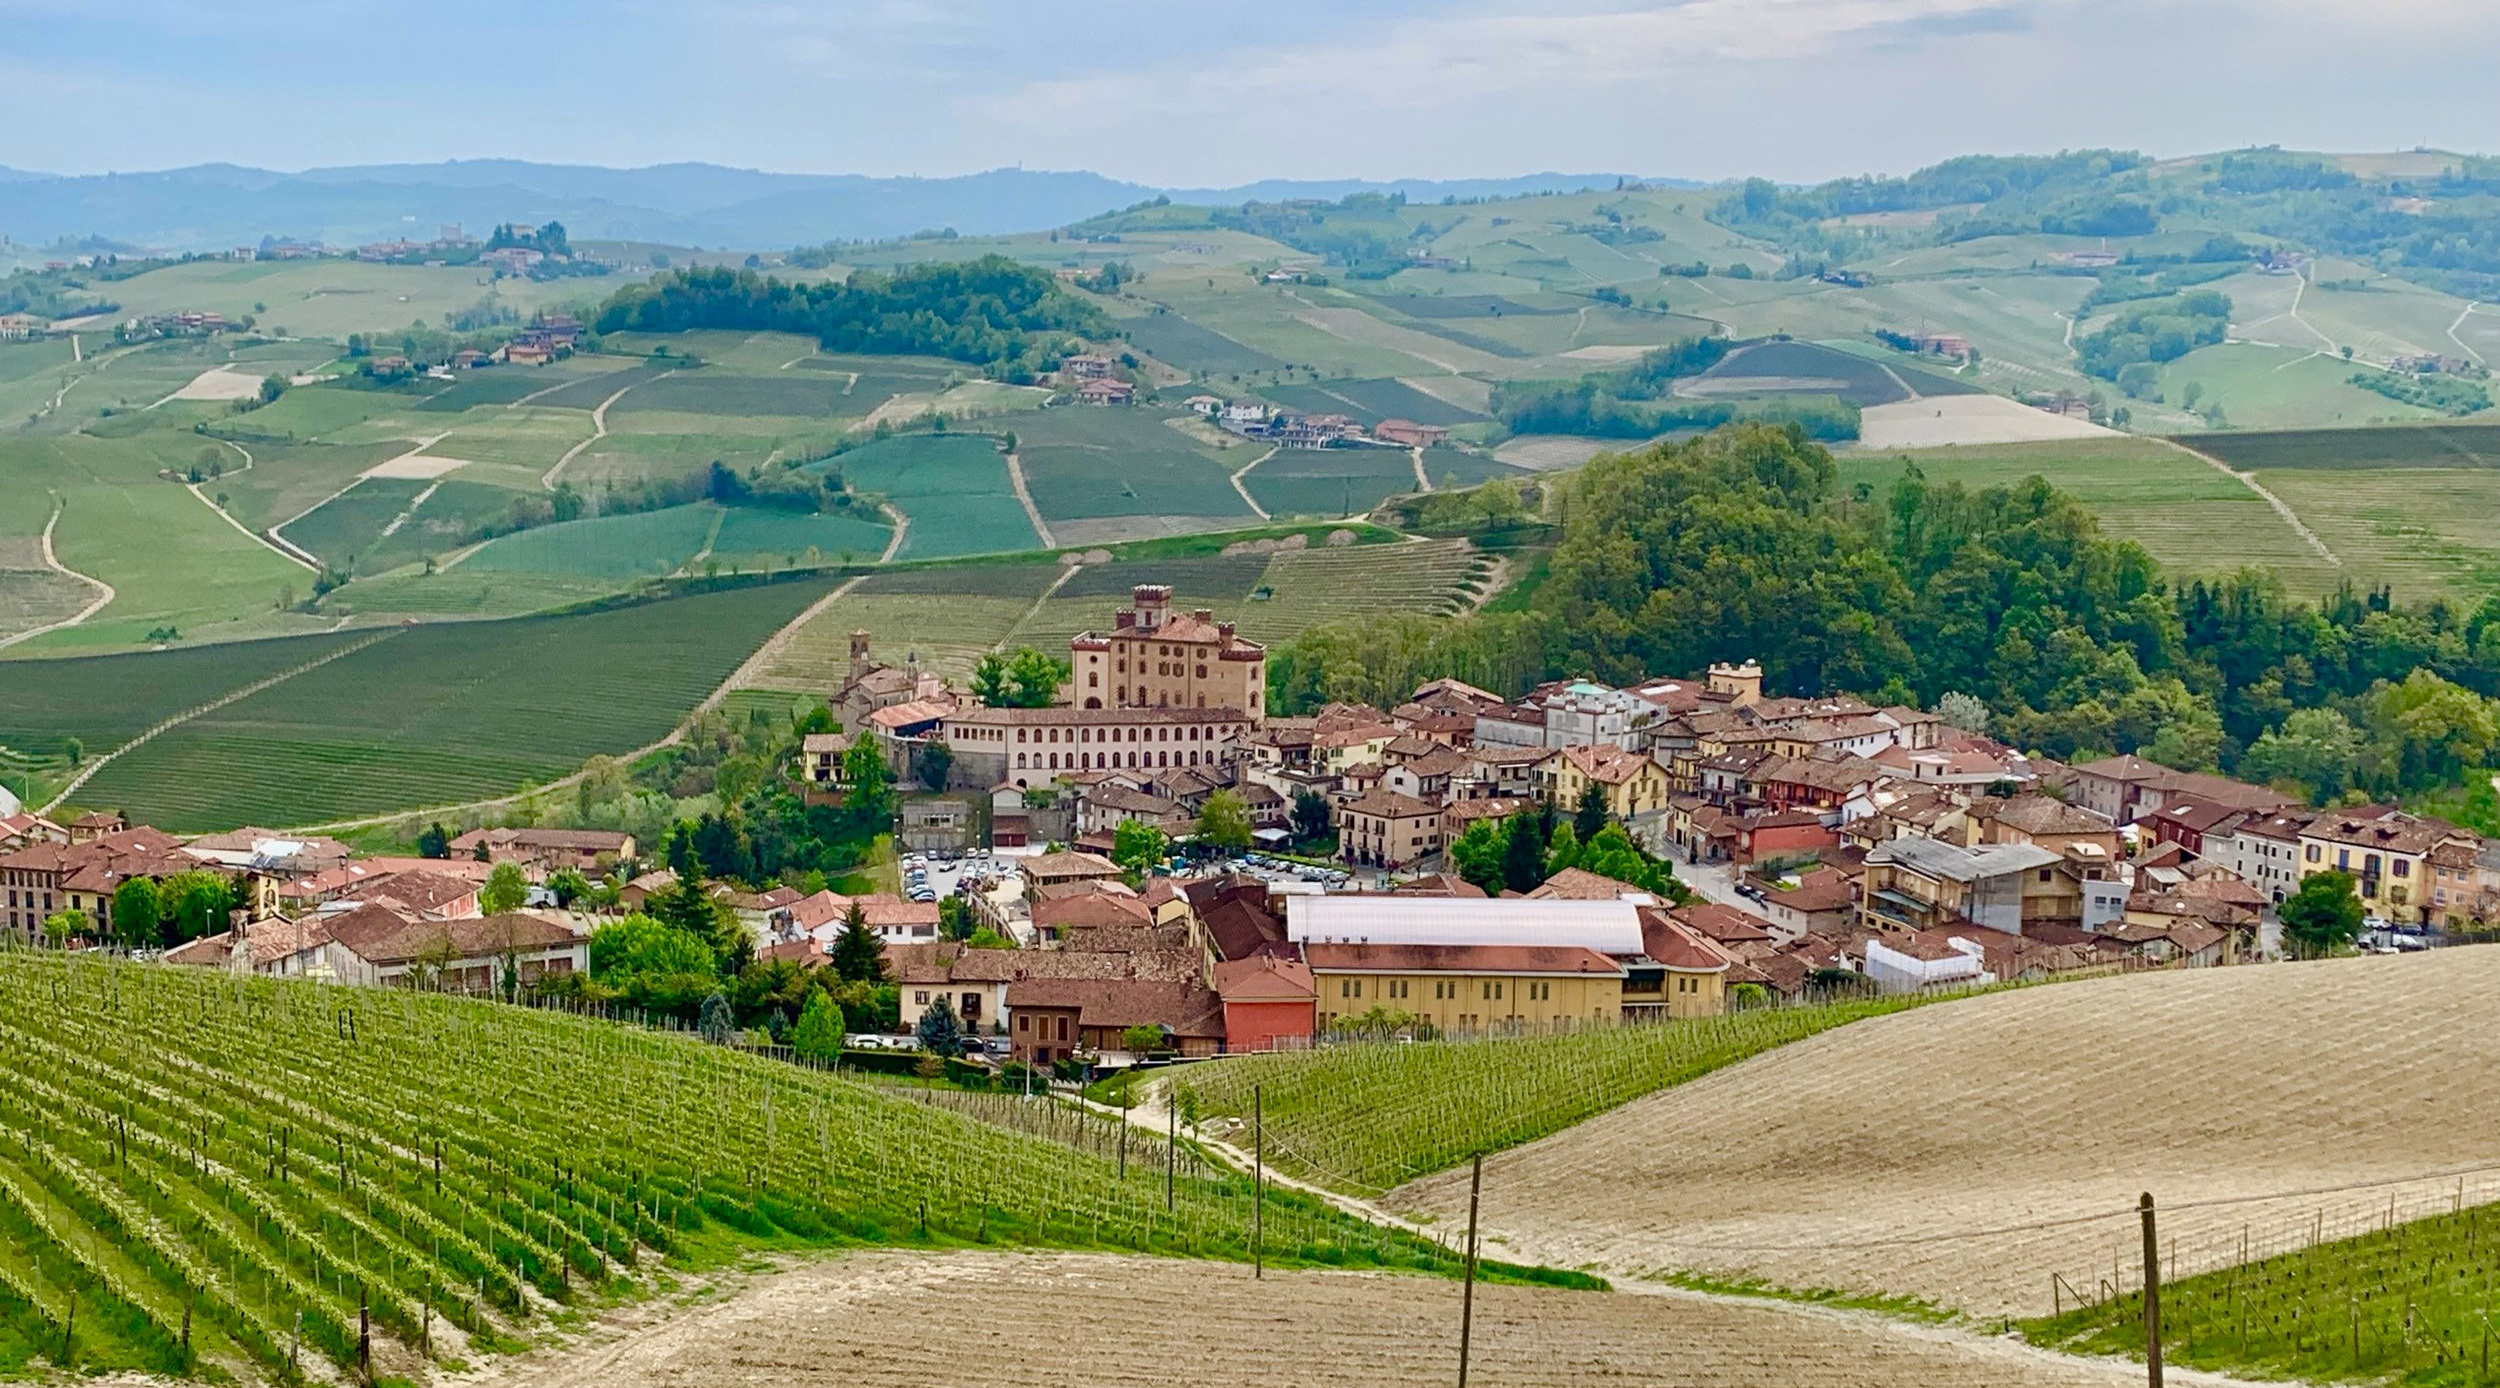 The village of Barolo with some of the famous Cannubi Cru vineyards